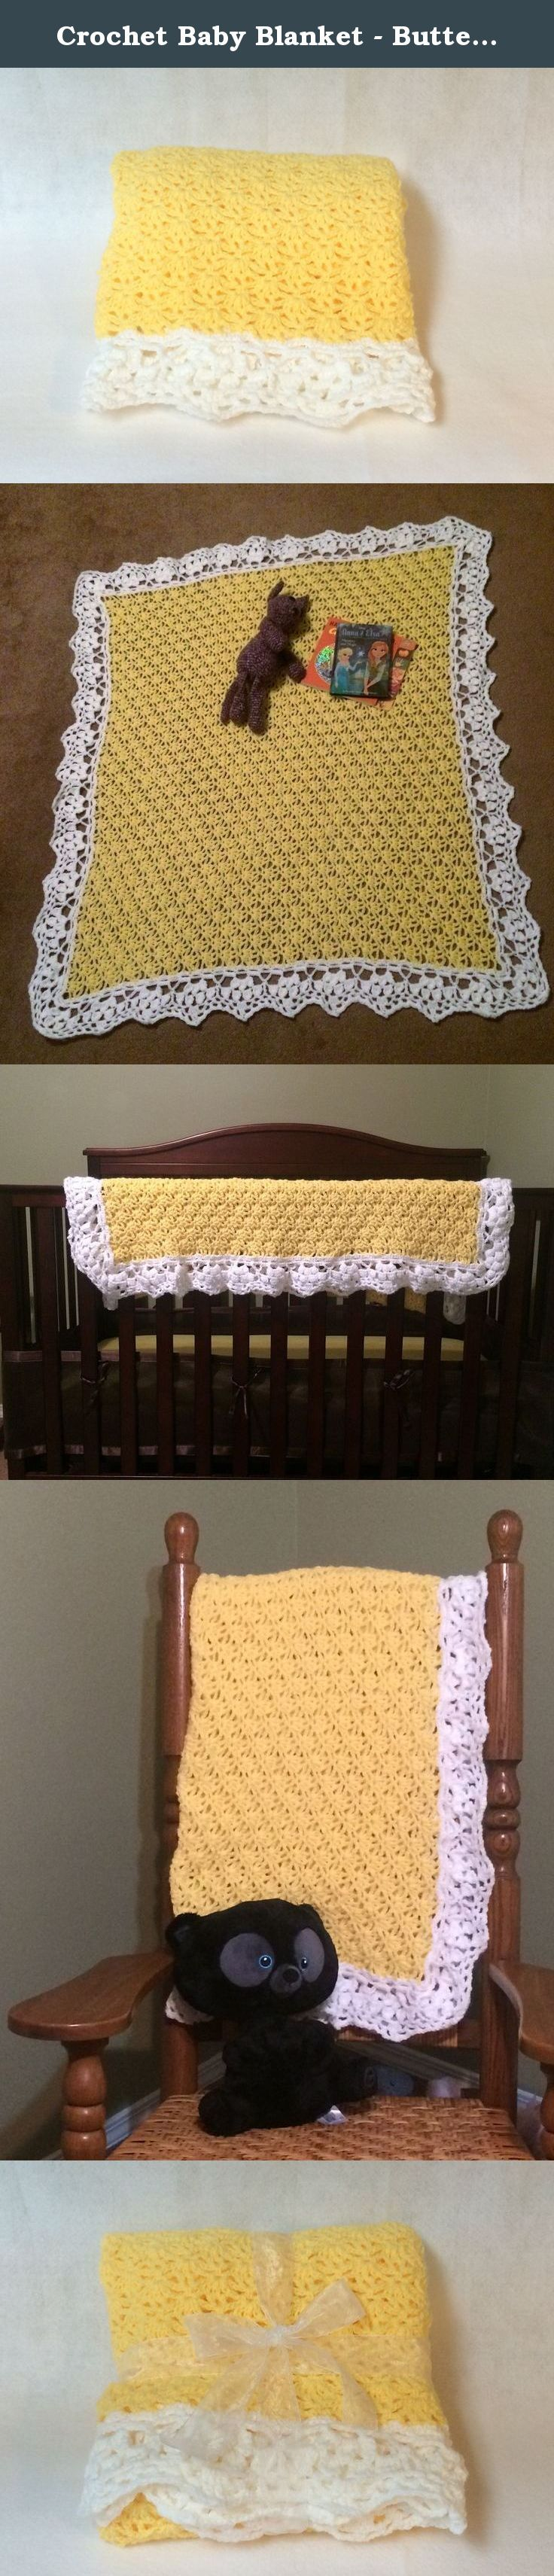 Crochet Baby Blanket - Buttercup. This blanket is the perfect mix of a classic pattern with modern comforts. The crochet lace pattern of butter cups makes up the center of the blanket with a white lace border that mimics the buttercup pattern.